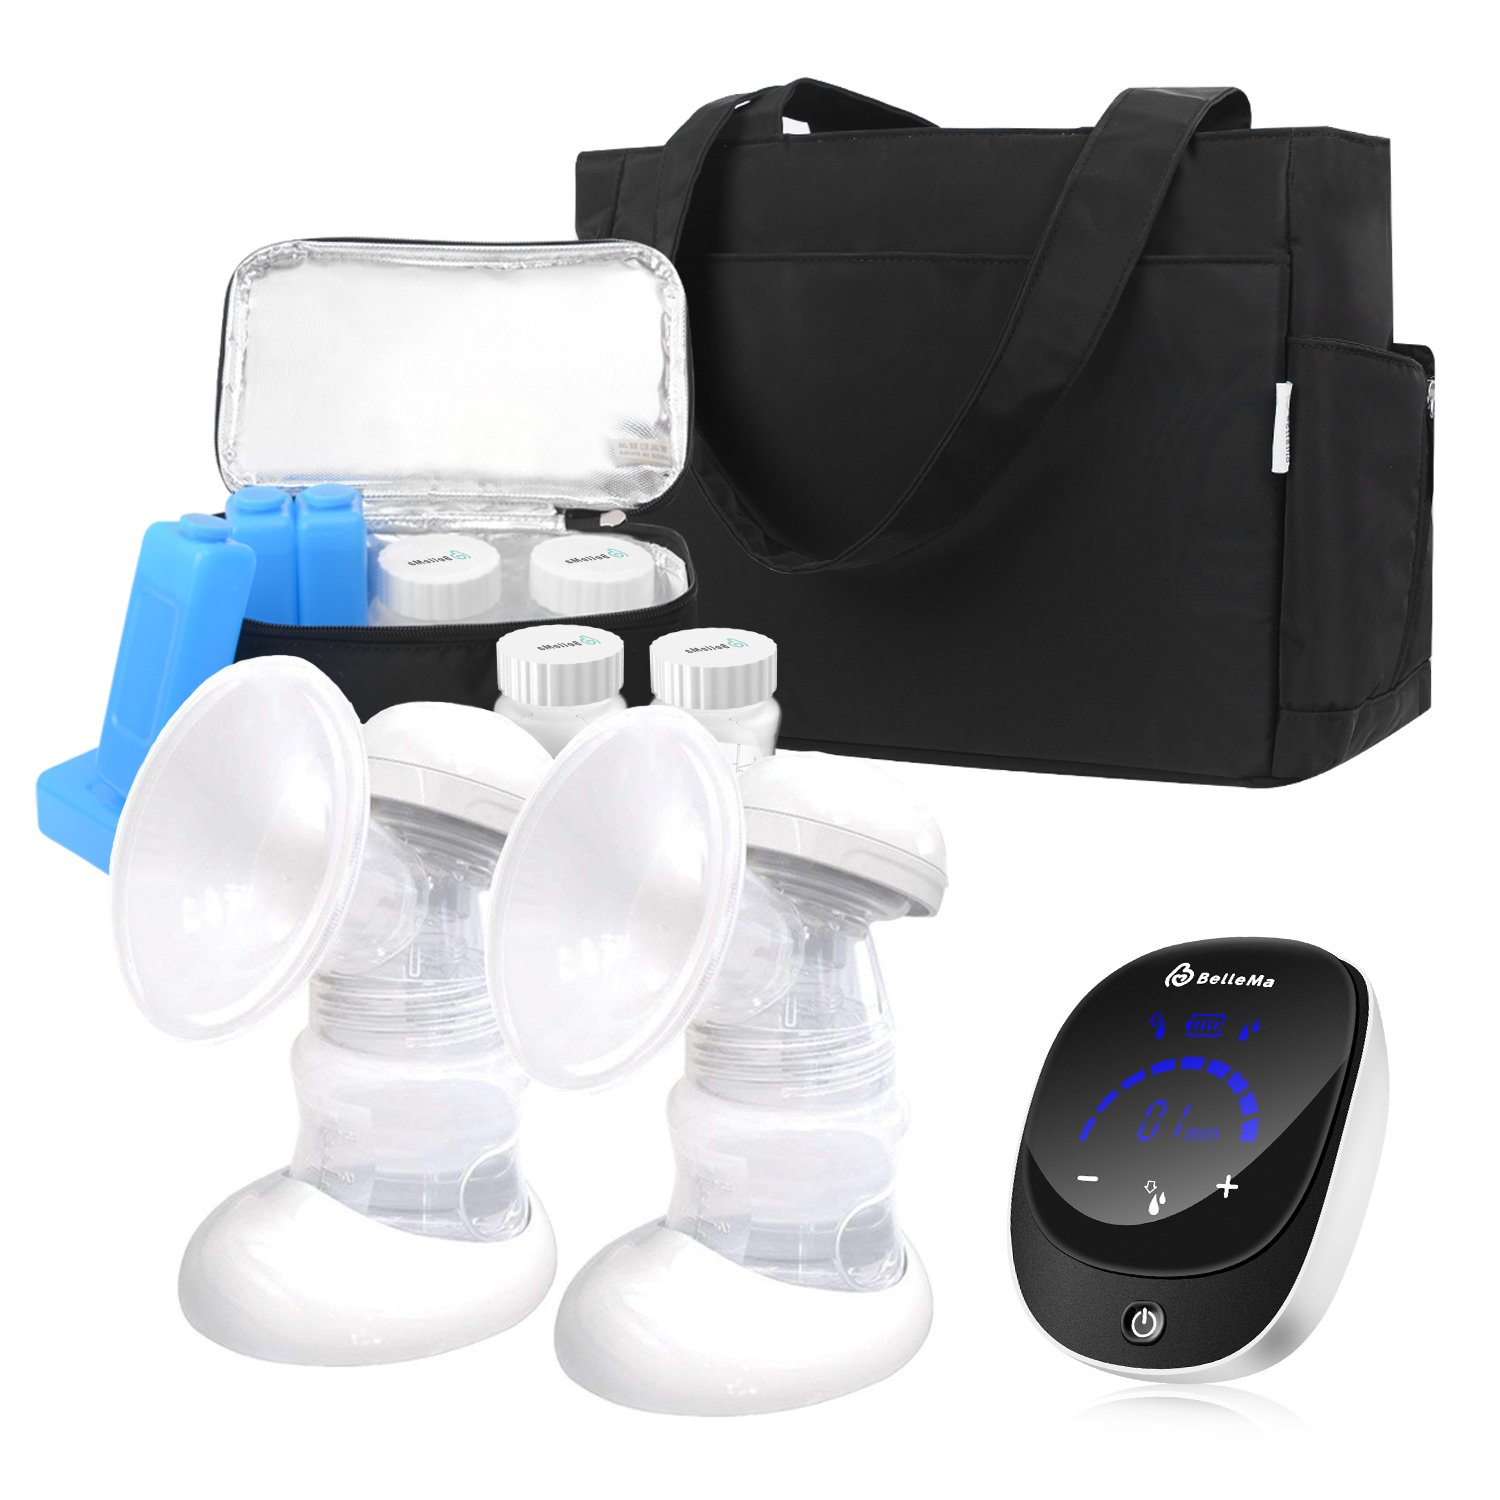 Electric Breast Pump with On The Go Tote, Bellema E3 Pro Customizable Setting Hospital Grade Breast Pump, Touch Control Breastfeeding Pump, 3 Power Low Noise Portable Milk Pump for Travel/Office/Home